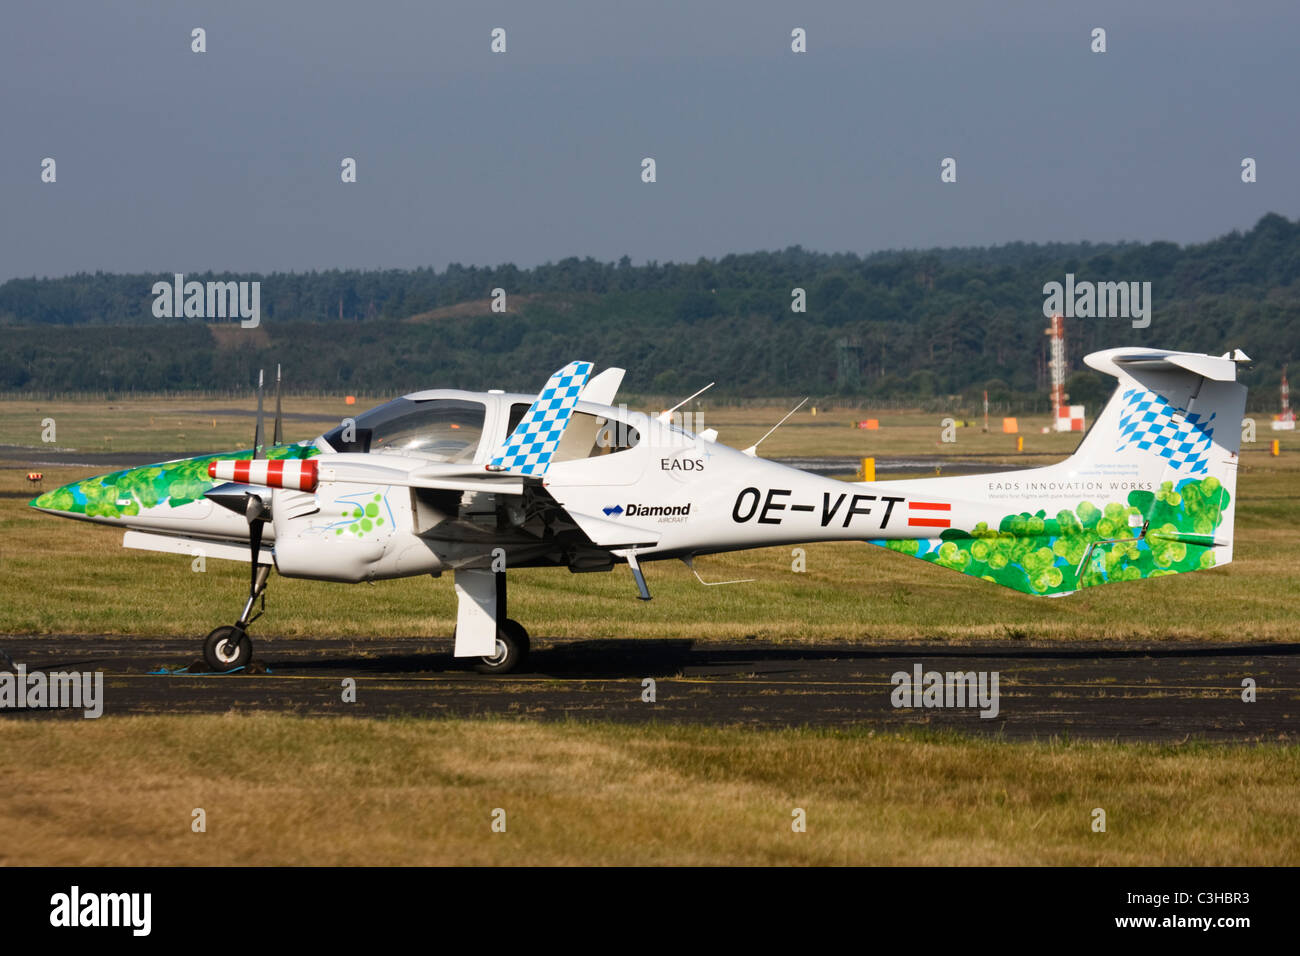 Diamond Aircraft Industries bio-fuel powered Diamond DA-42 Twin Star aircraft at Farnborough International Airshow. - Stock Image